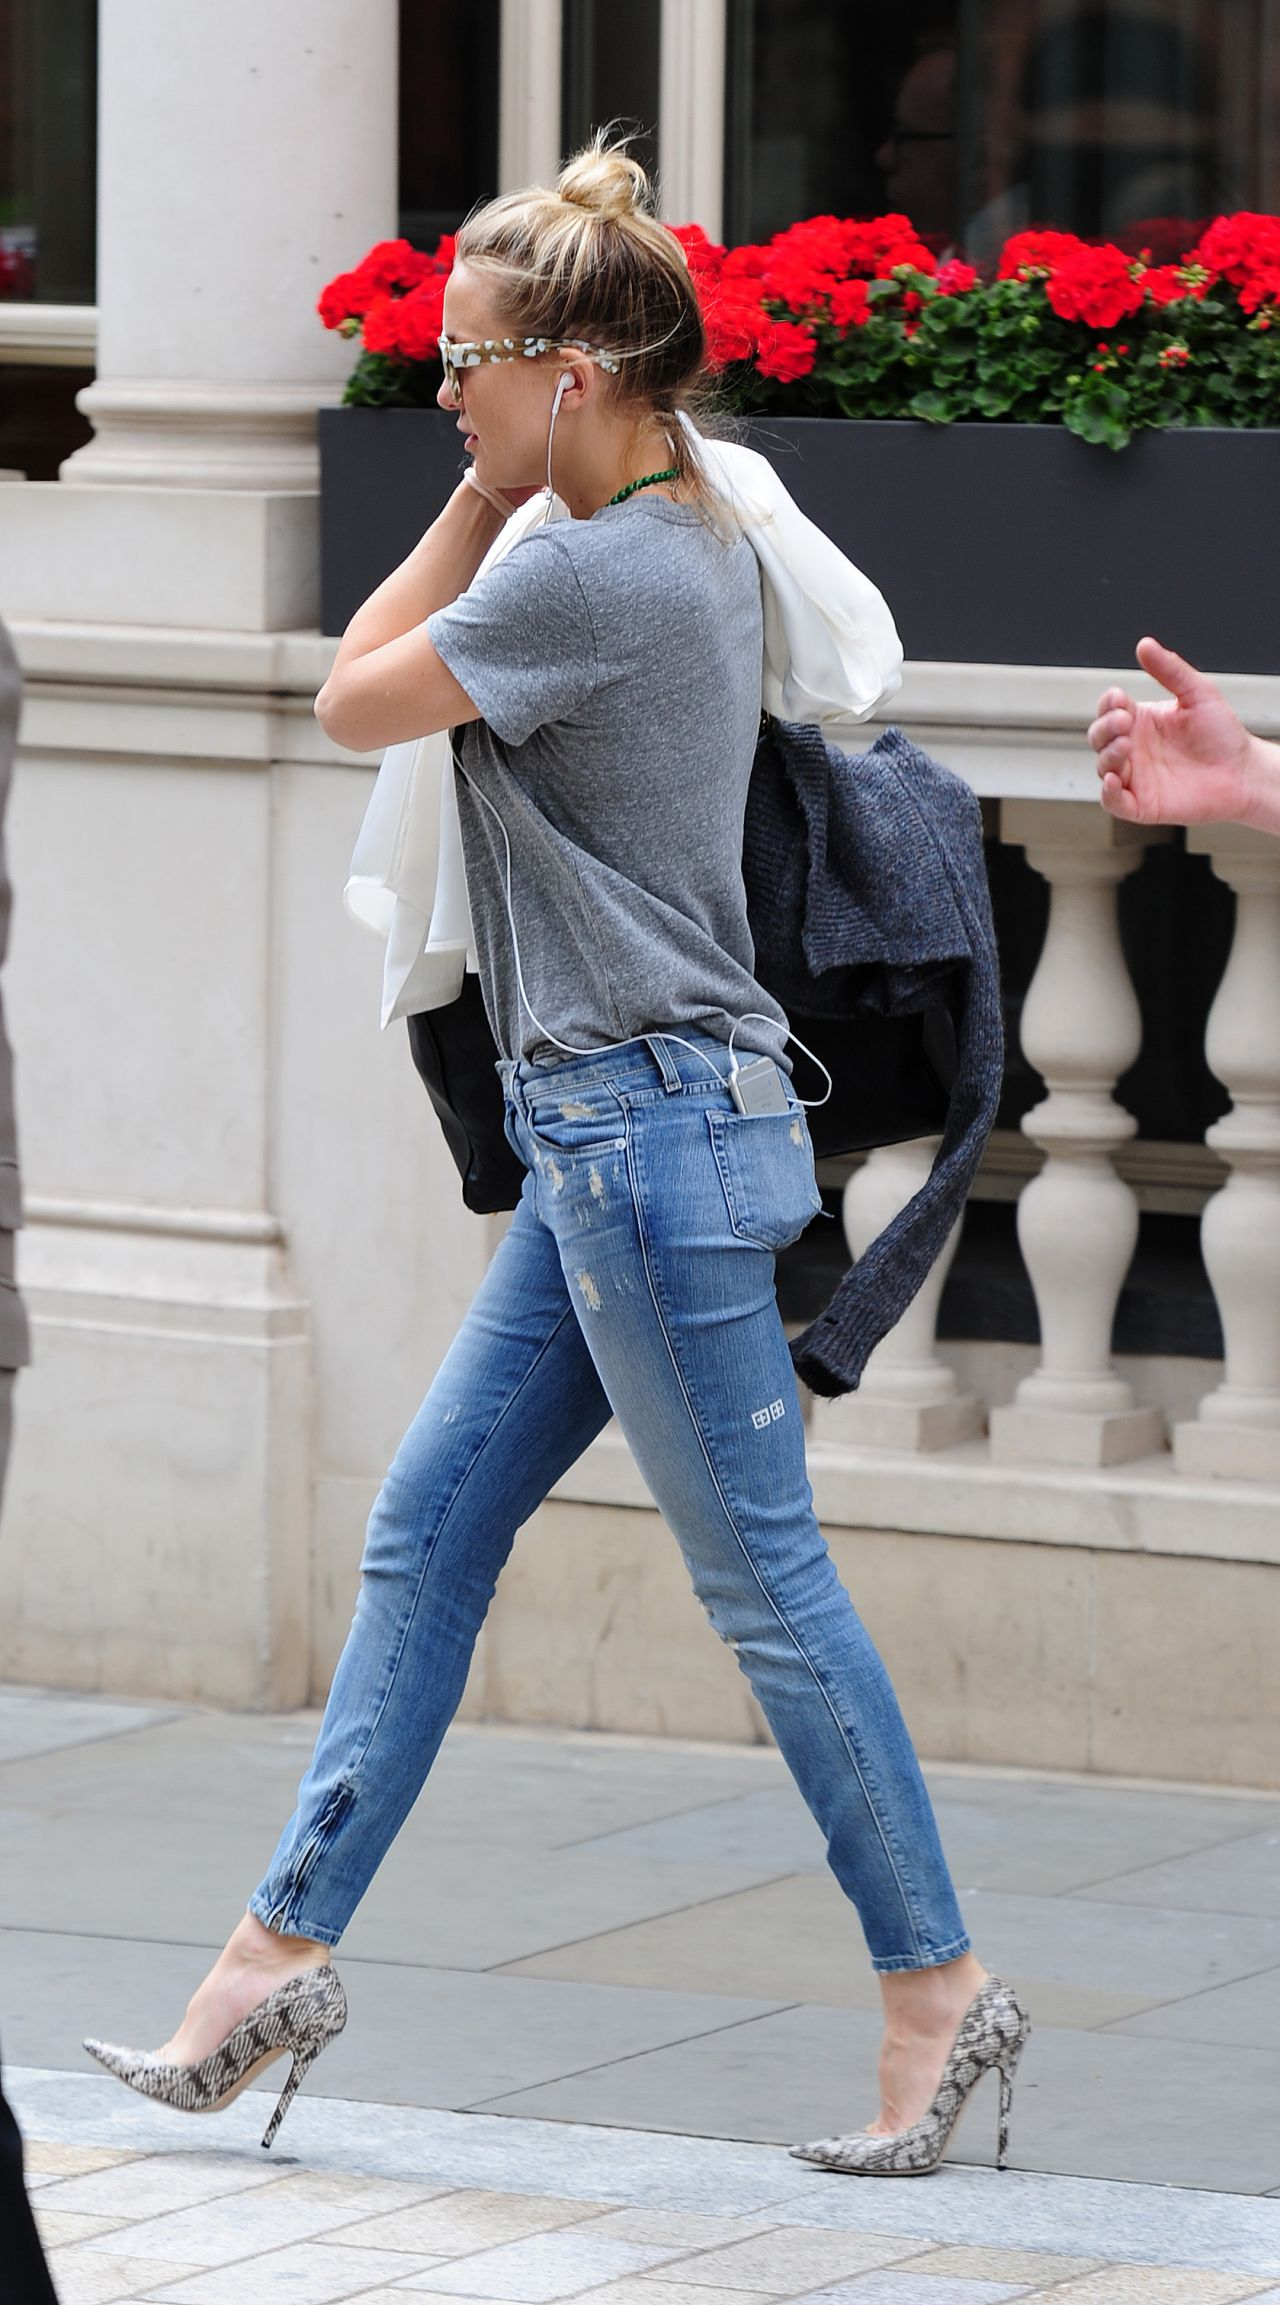 Kate Hudson In Jeans Out In London June 2015